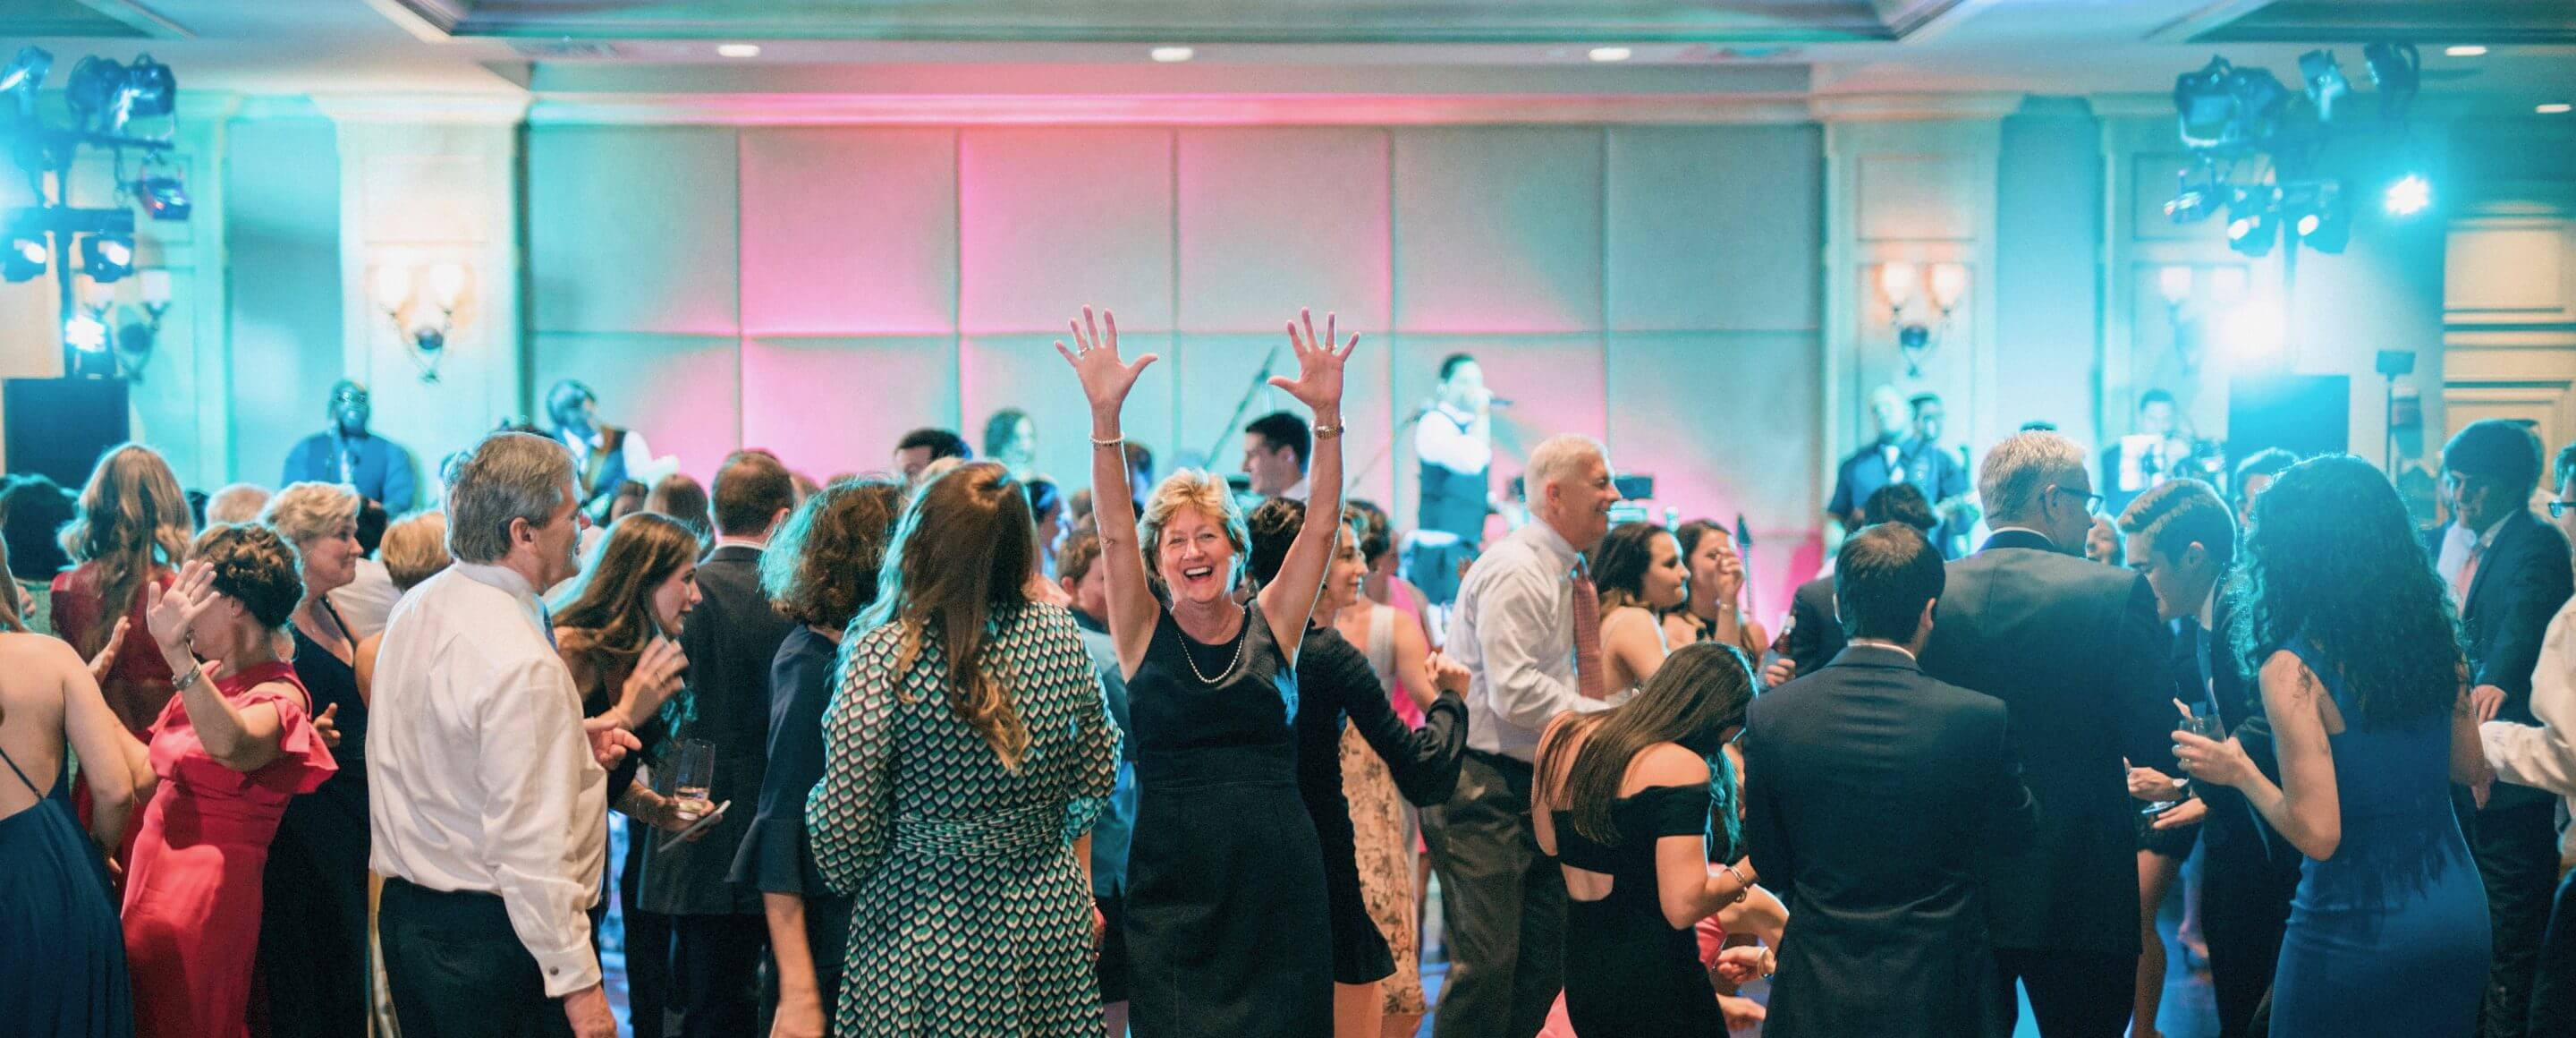 Attendees dancing at wedding reception hosted by band None Other